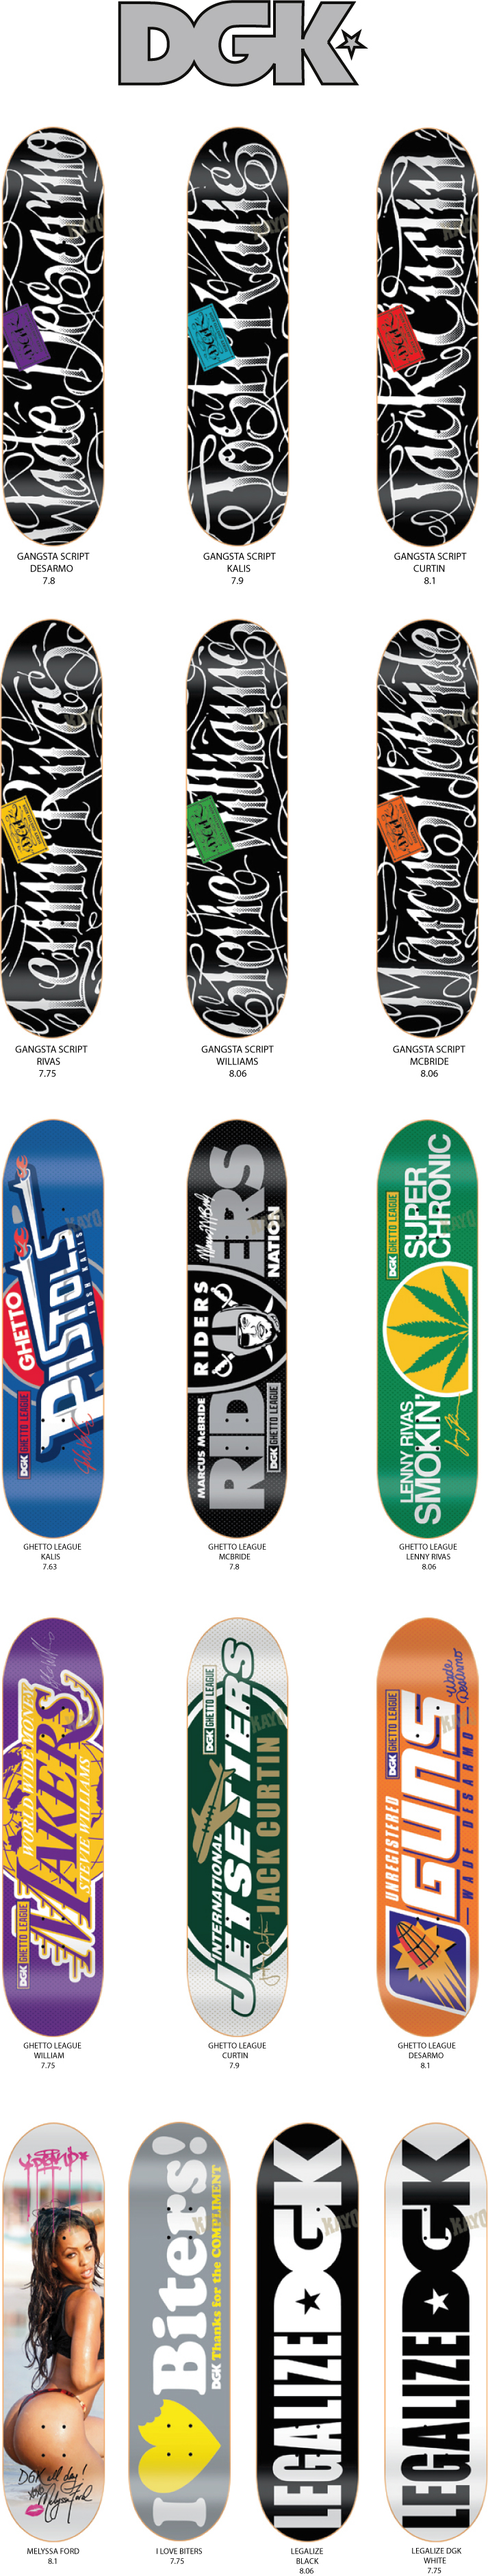 DGK GANGSTERSCRIPT DECKS